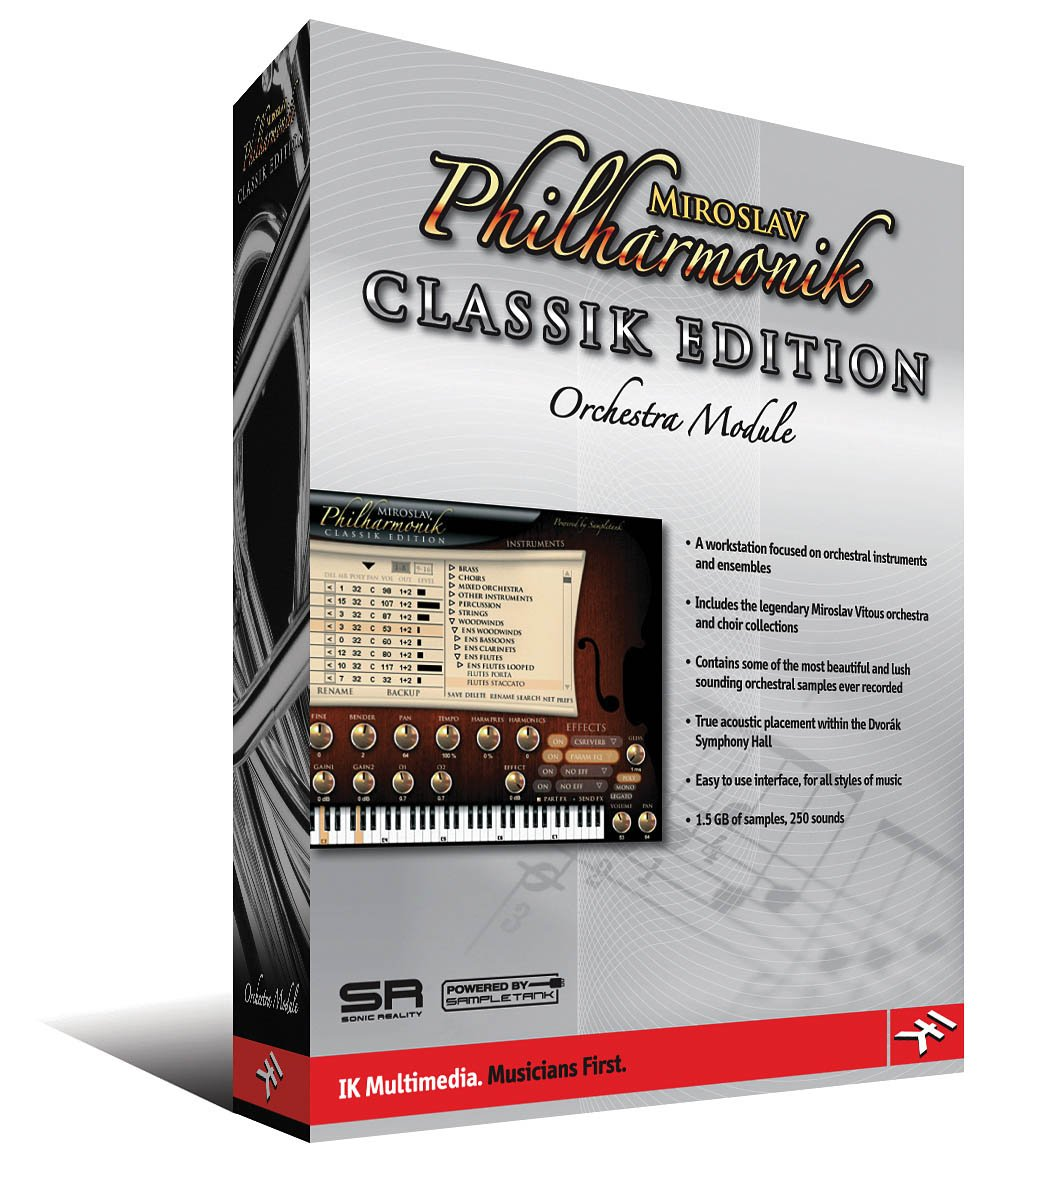 MIROSLAV PHILHARMONIK        CLASSIKEDITION ORCHESTRA     MODULE     SOFTWARE by IK Multimedia